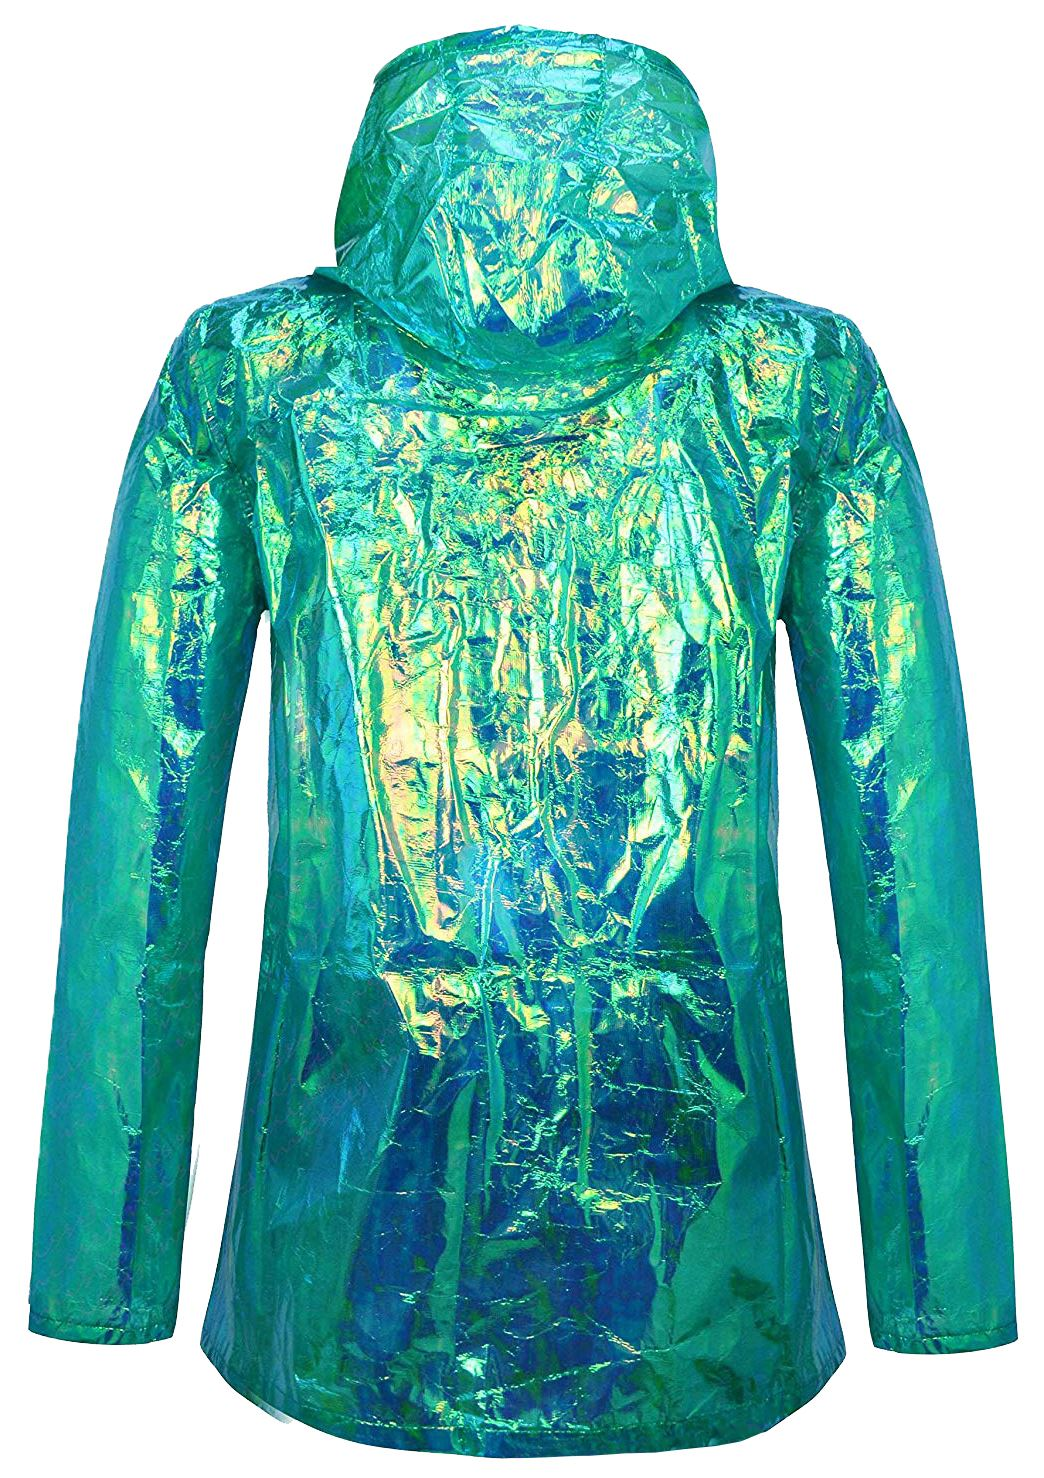 New-Ladies-Unicorn-Holographic-Zipped-Neon-Festival-Mac-Parka-Raincoat-Jacket thumbnail 3